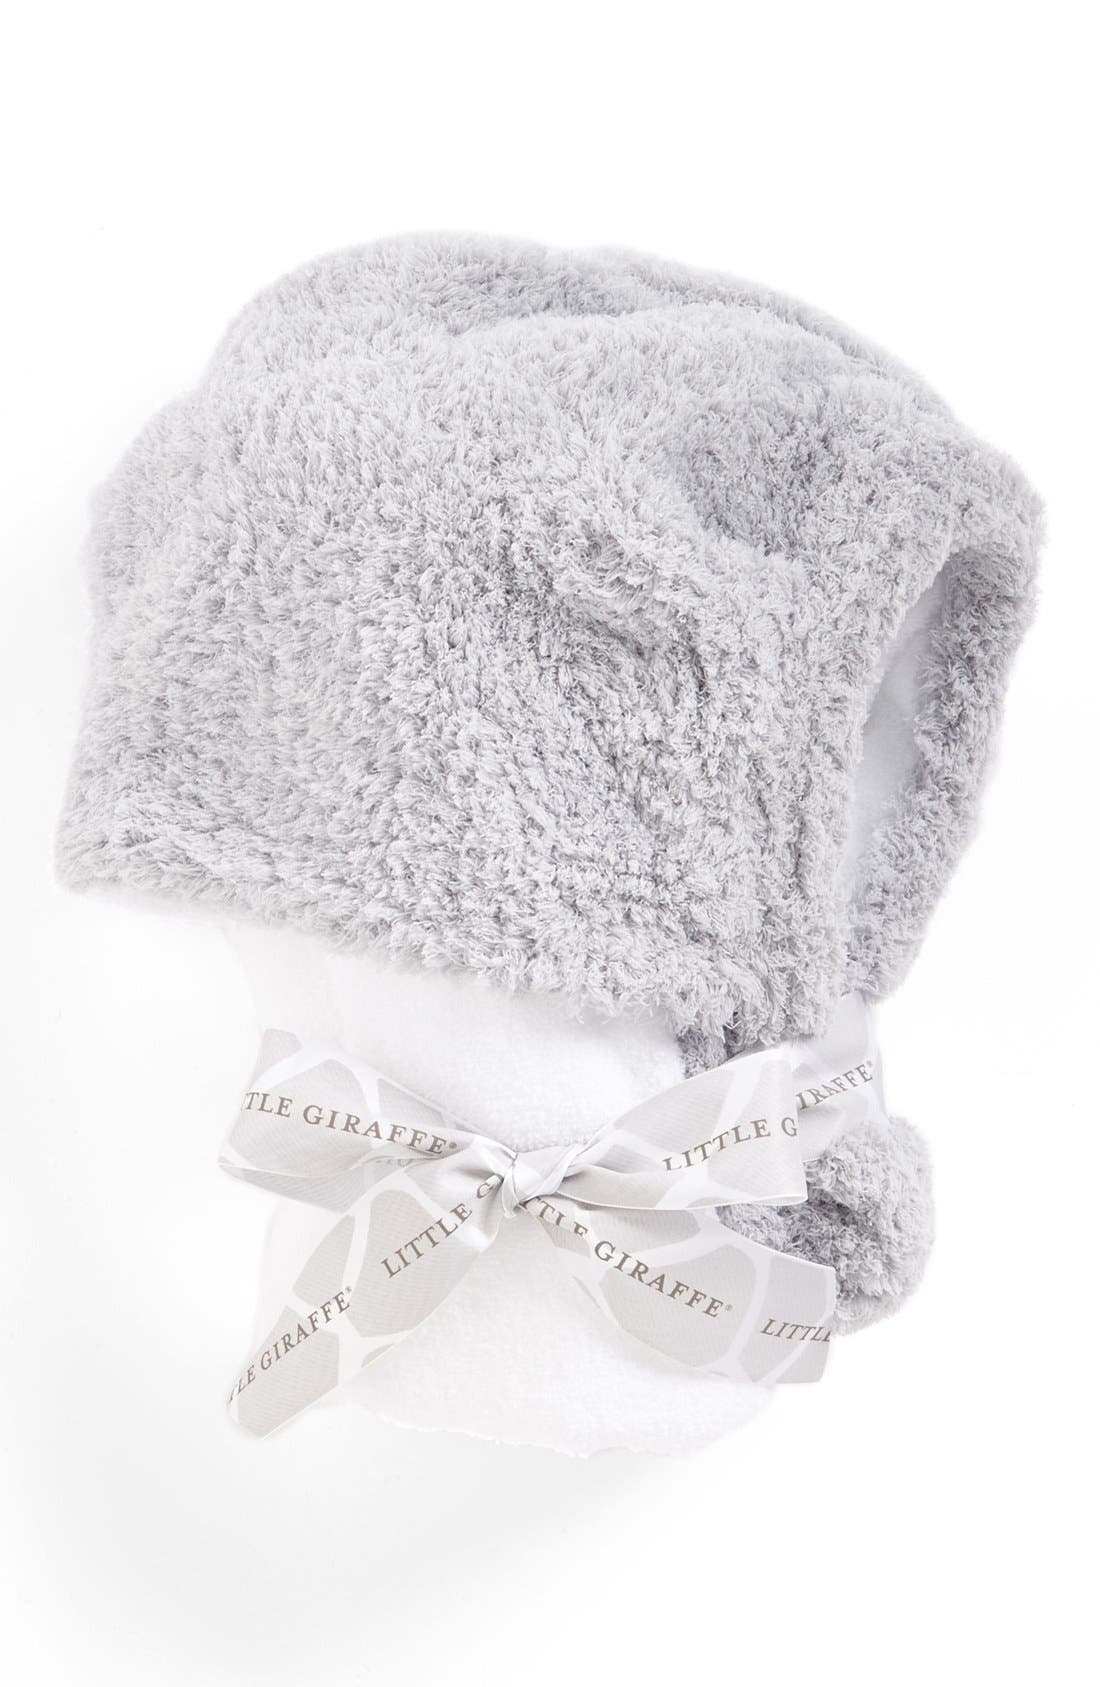 Chenille Hooded Towel,                             Main thumbnail 1, color,                             040